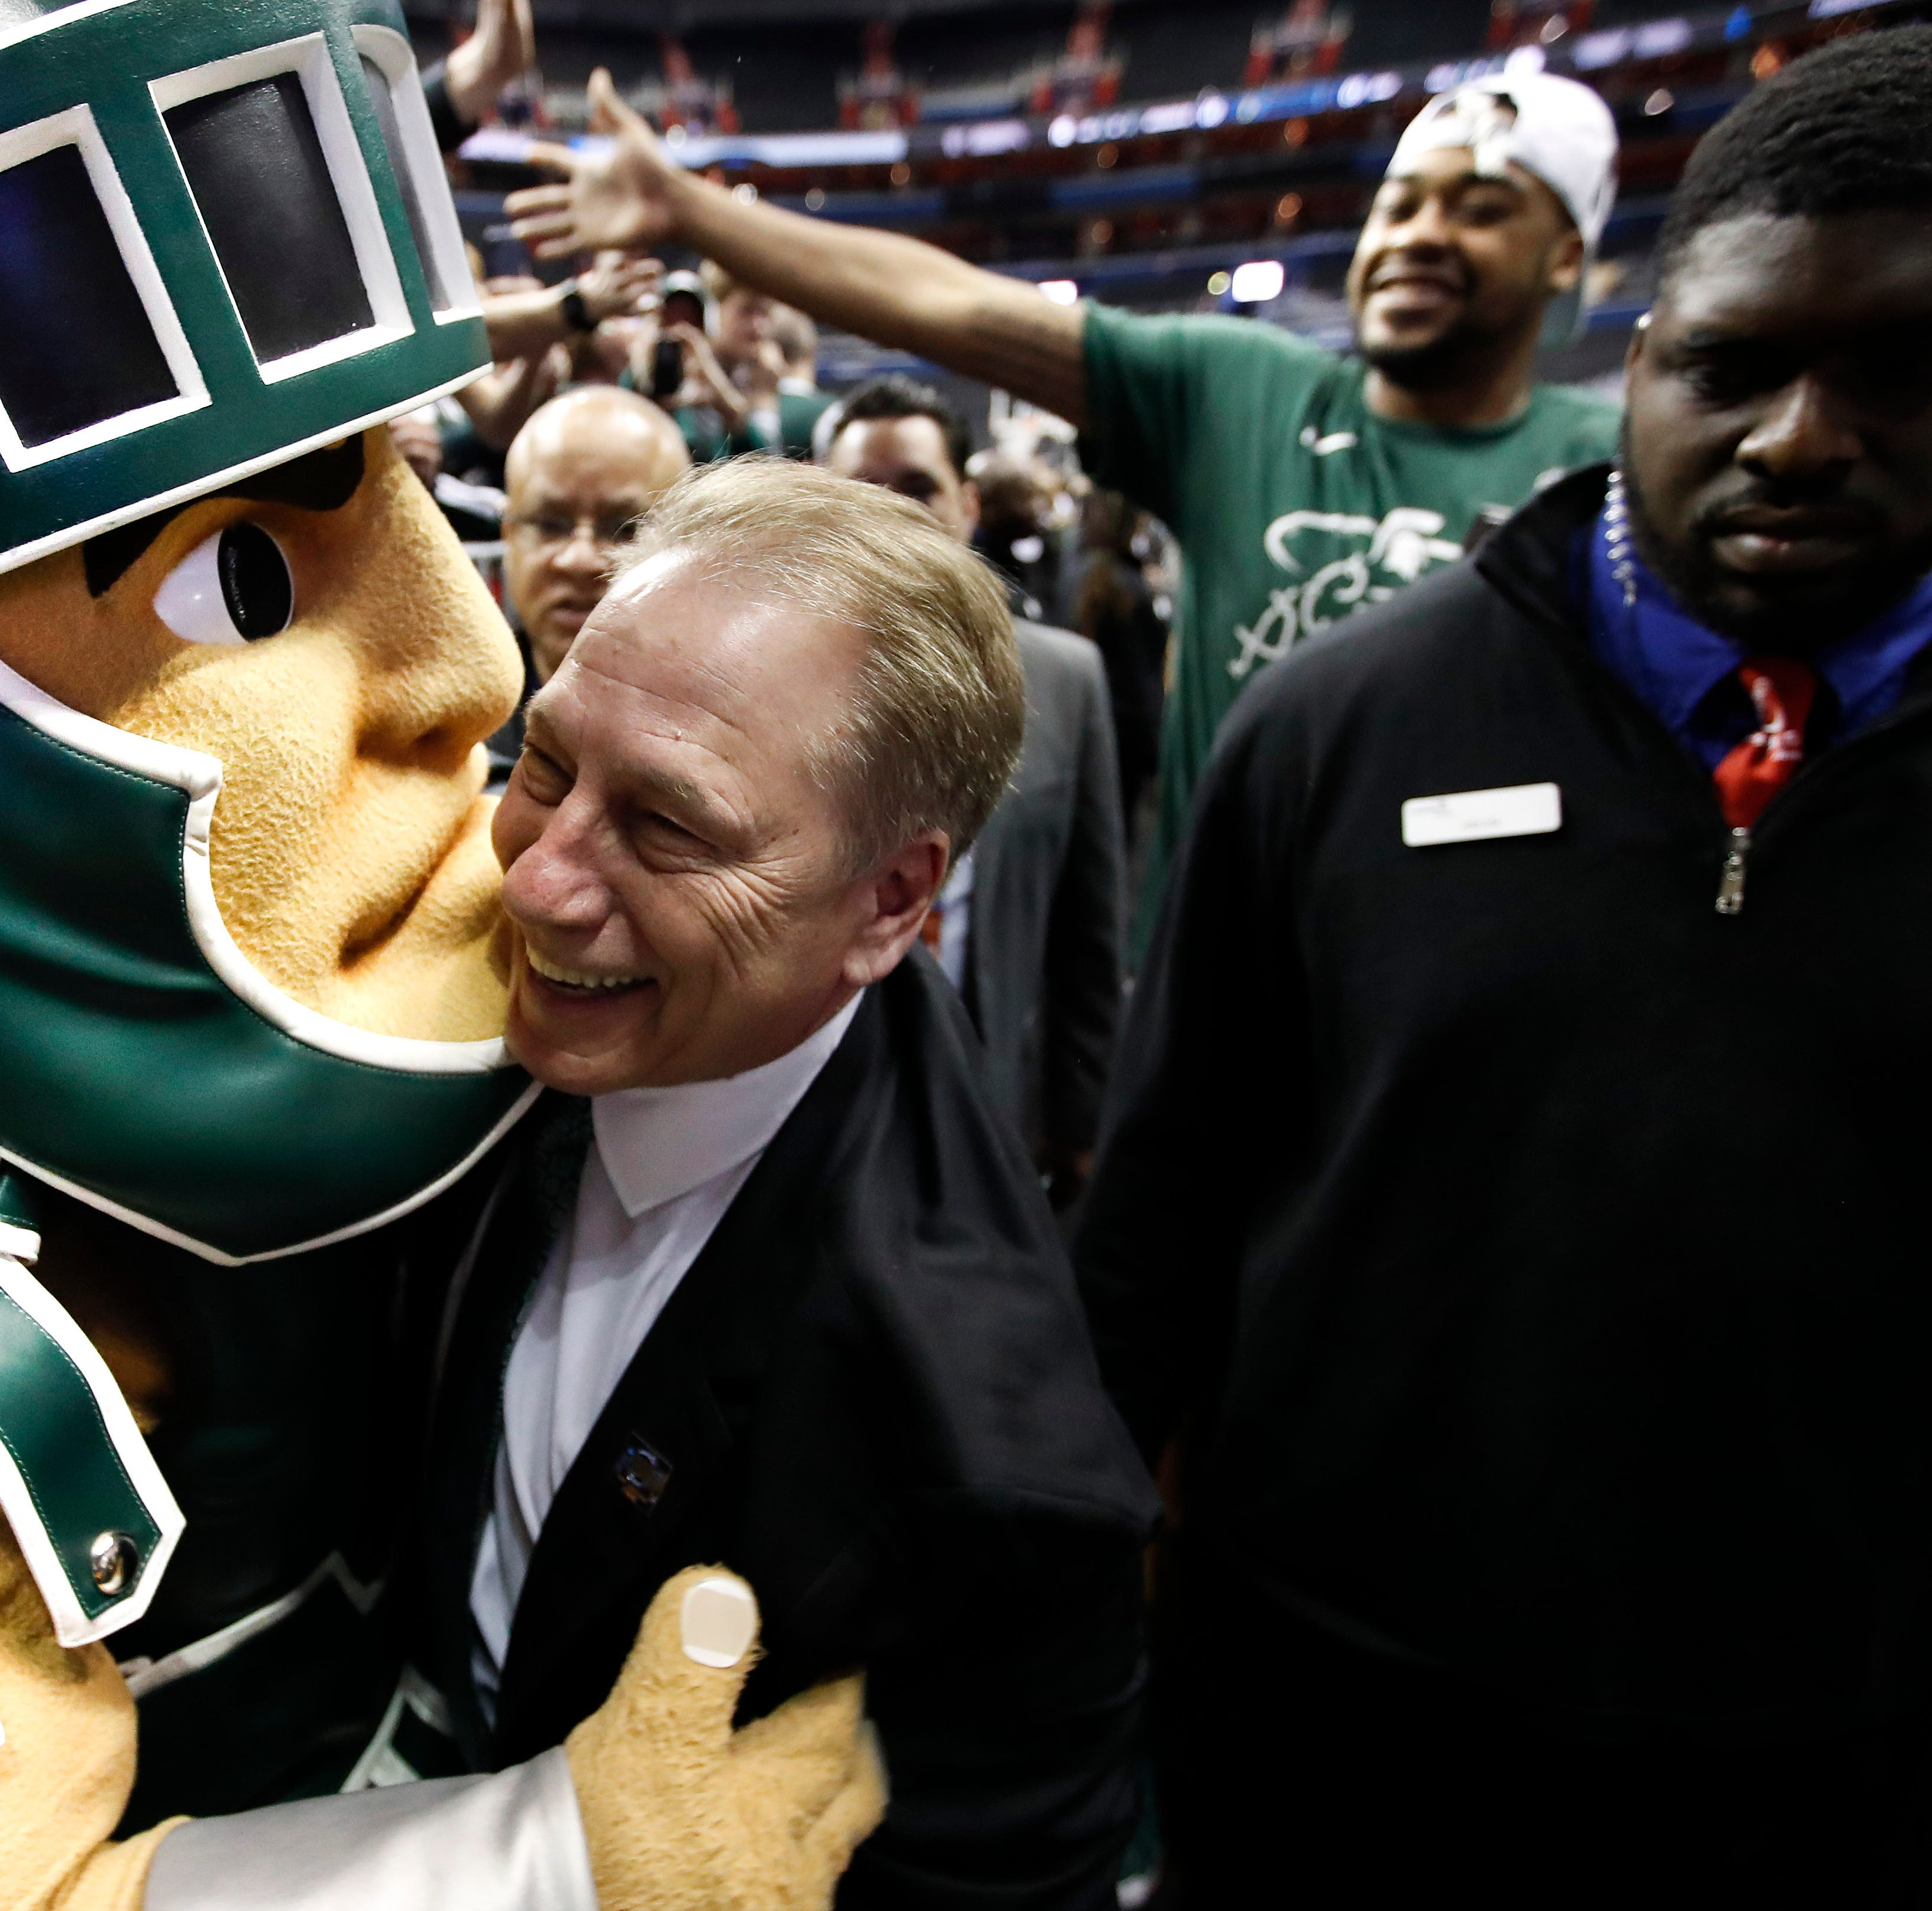 Mo' money! Michigan State's Tom Izzo at $225K in bonuses, and counting